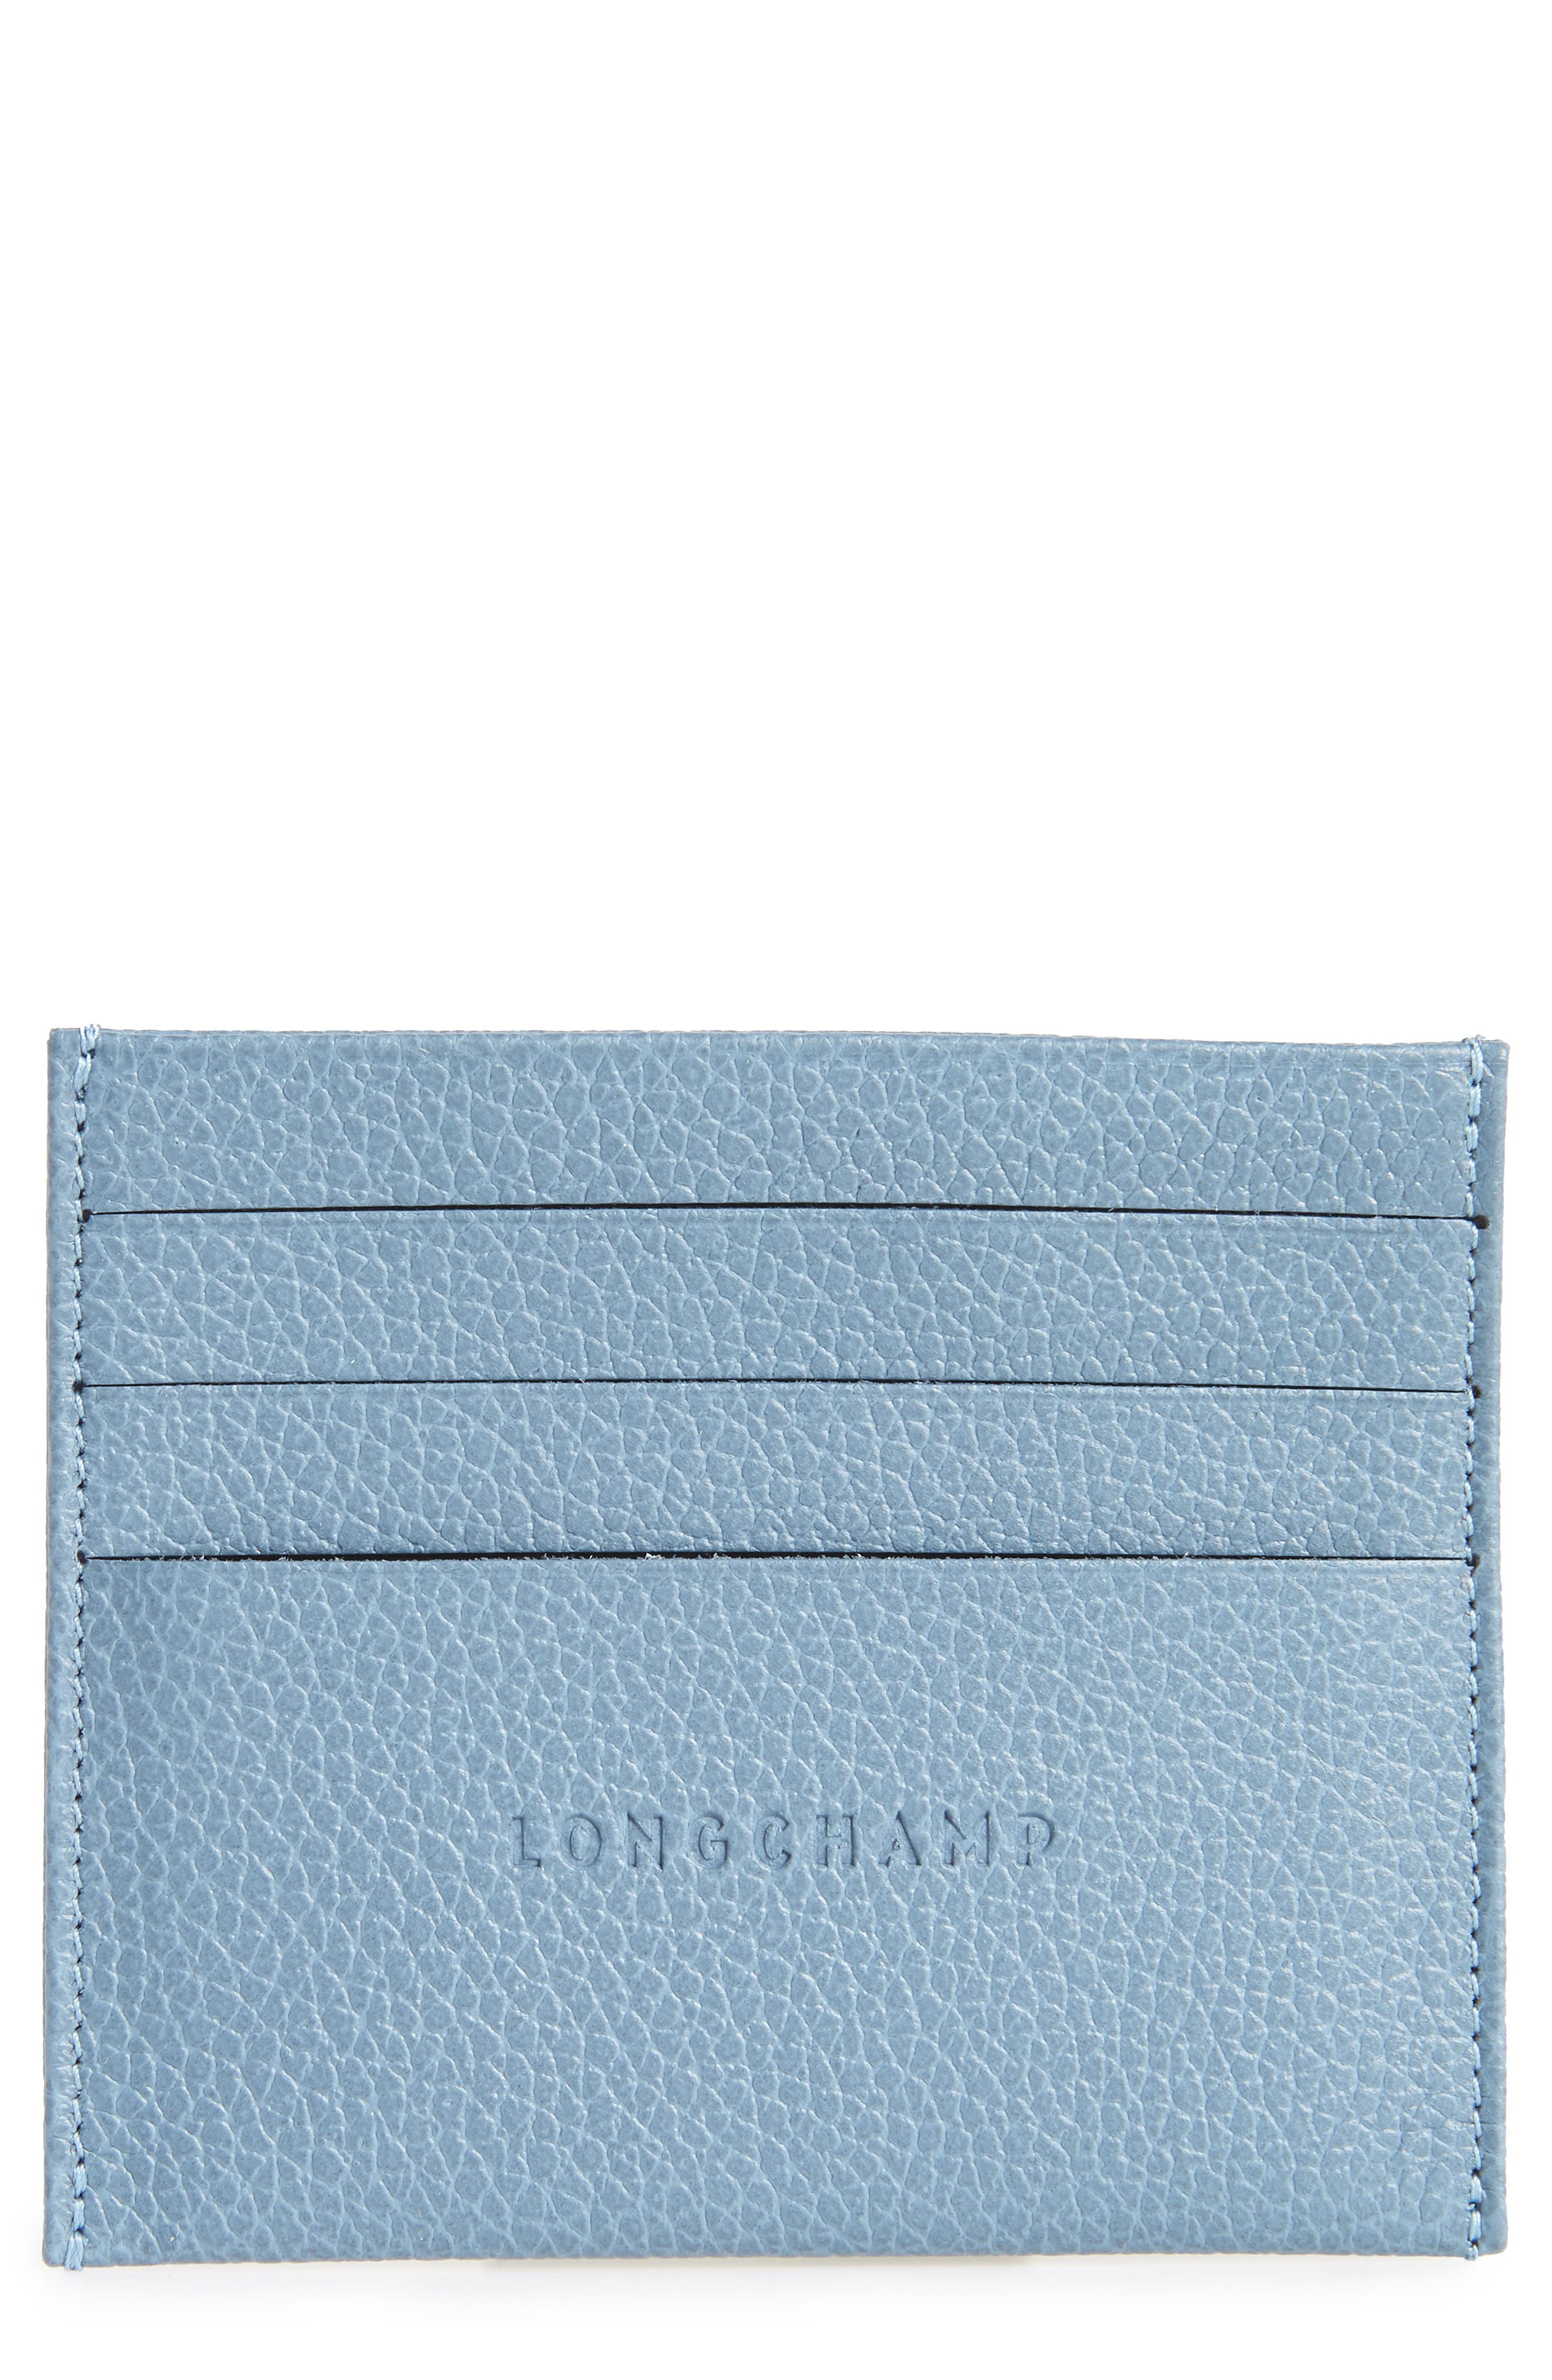 'Le Foulonne' Pebbled Leather Card Holder,                         Main,                         color, NORDIC